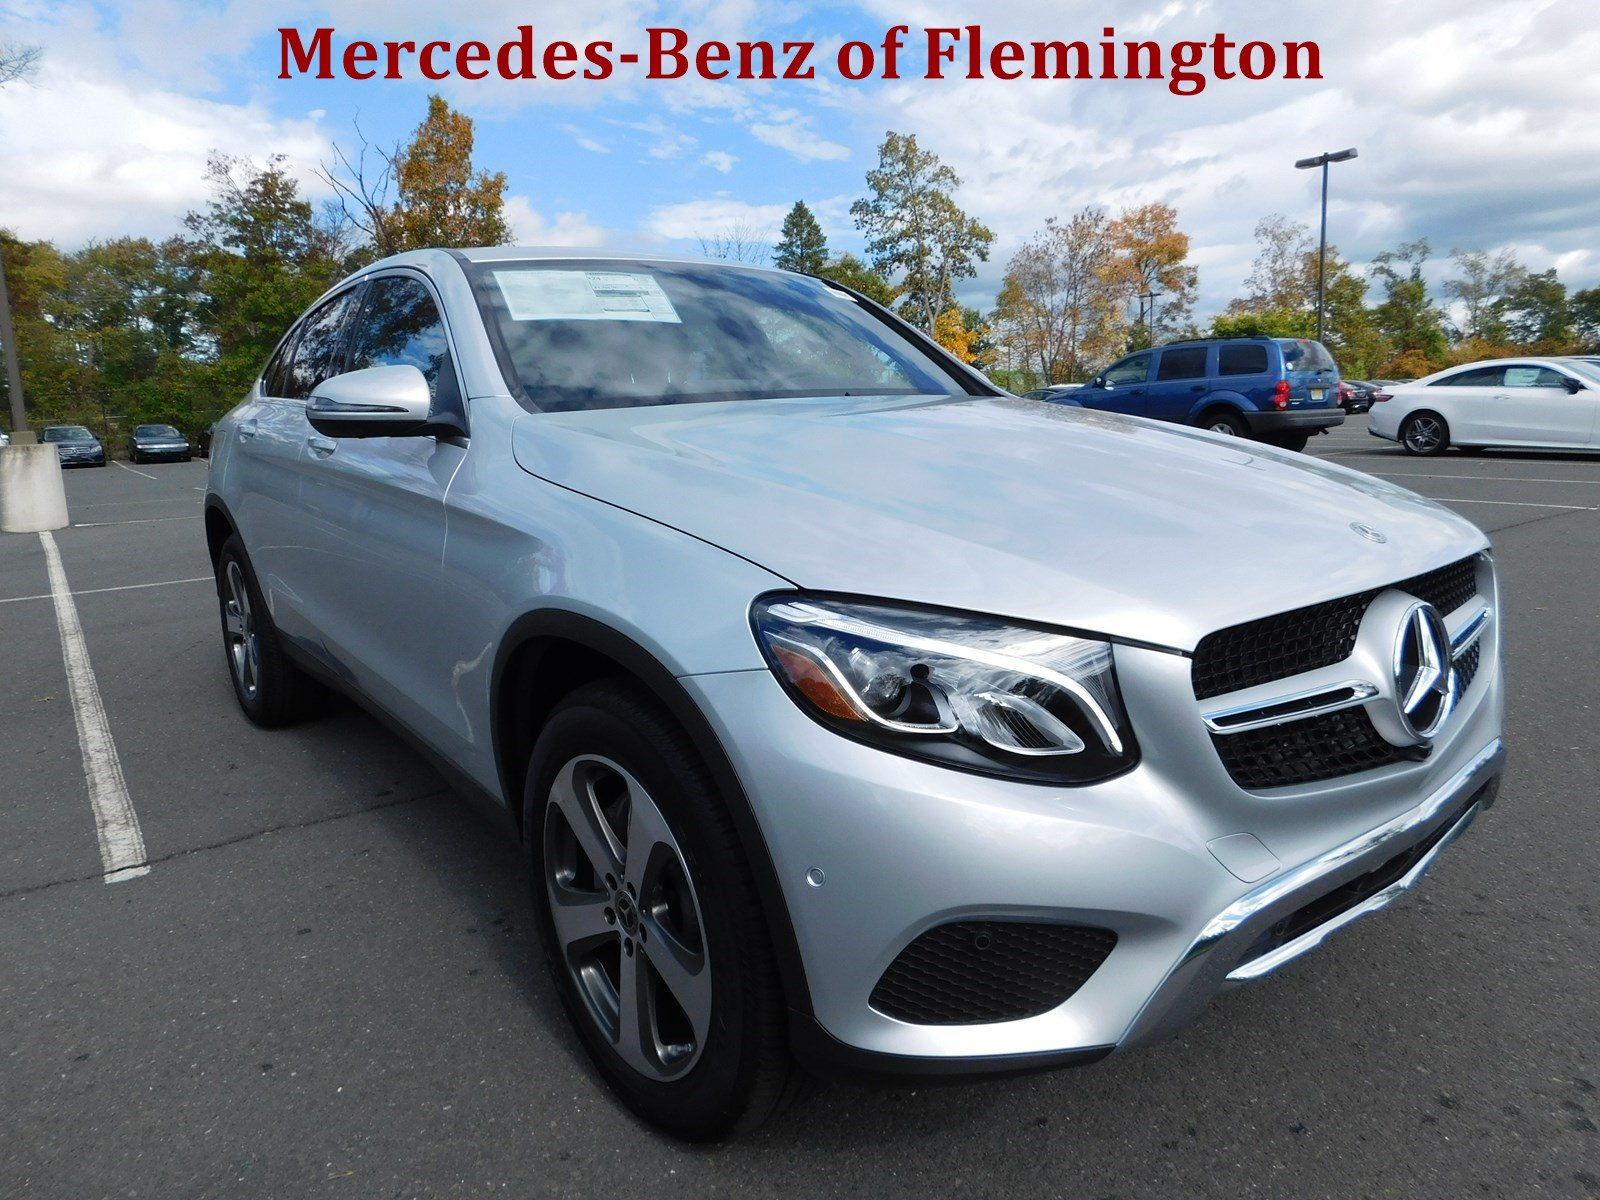 new 2018 mercedes benz glc glc 300 coupe in flemington On flemington mercedes benz